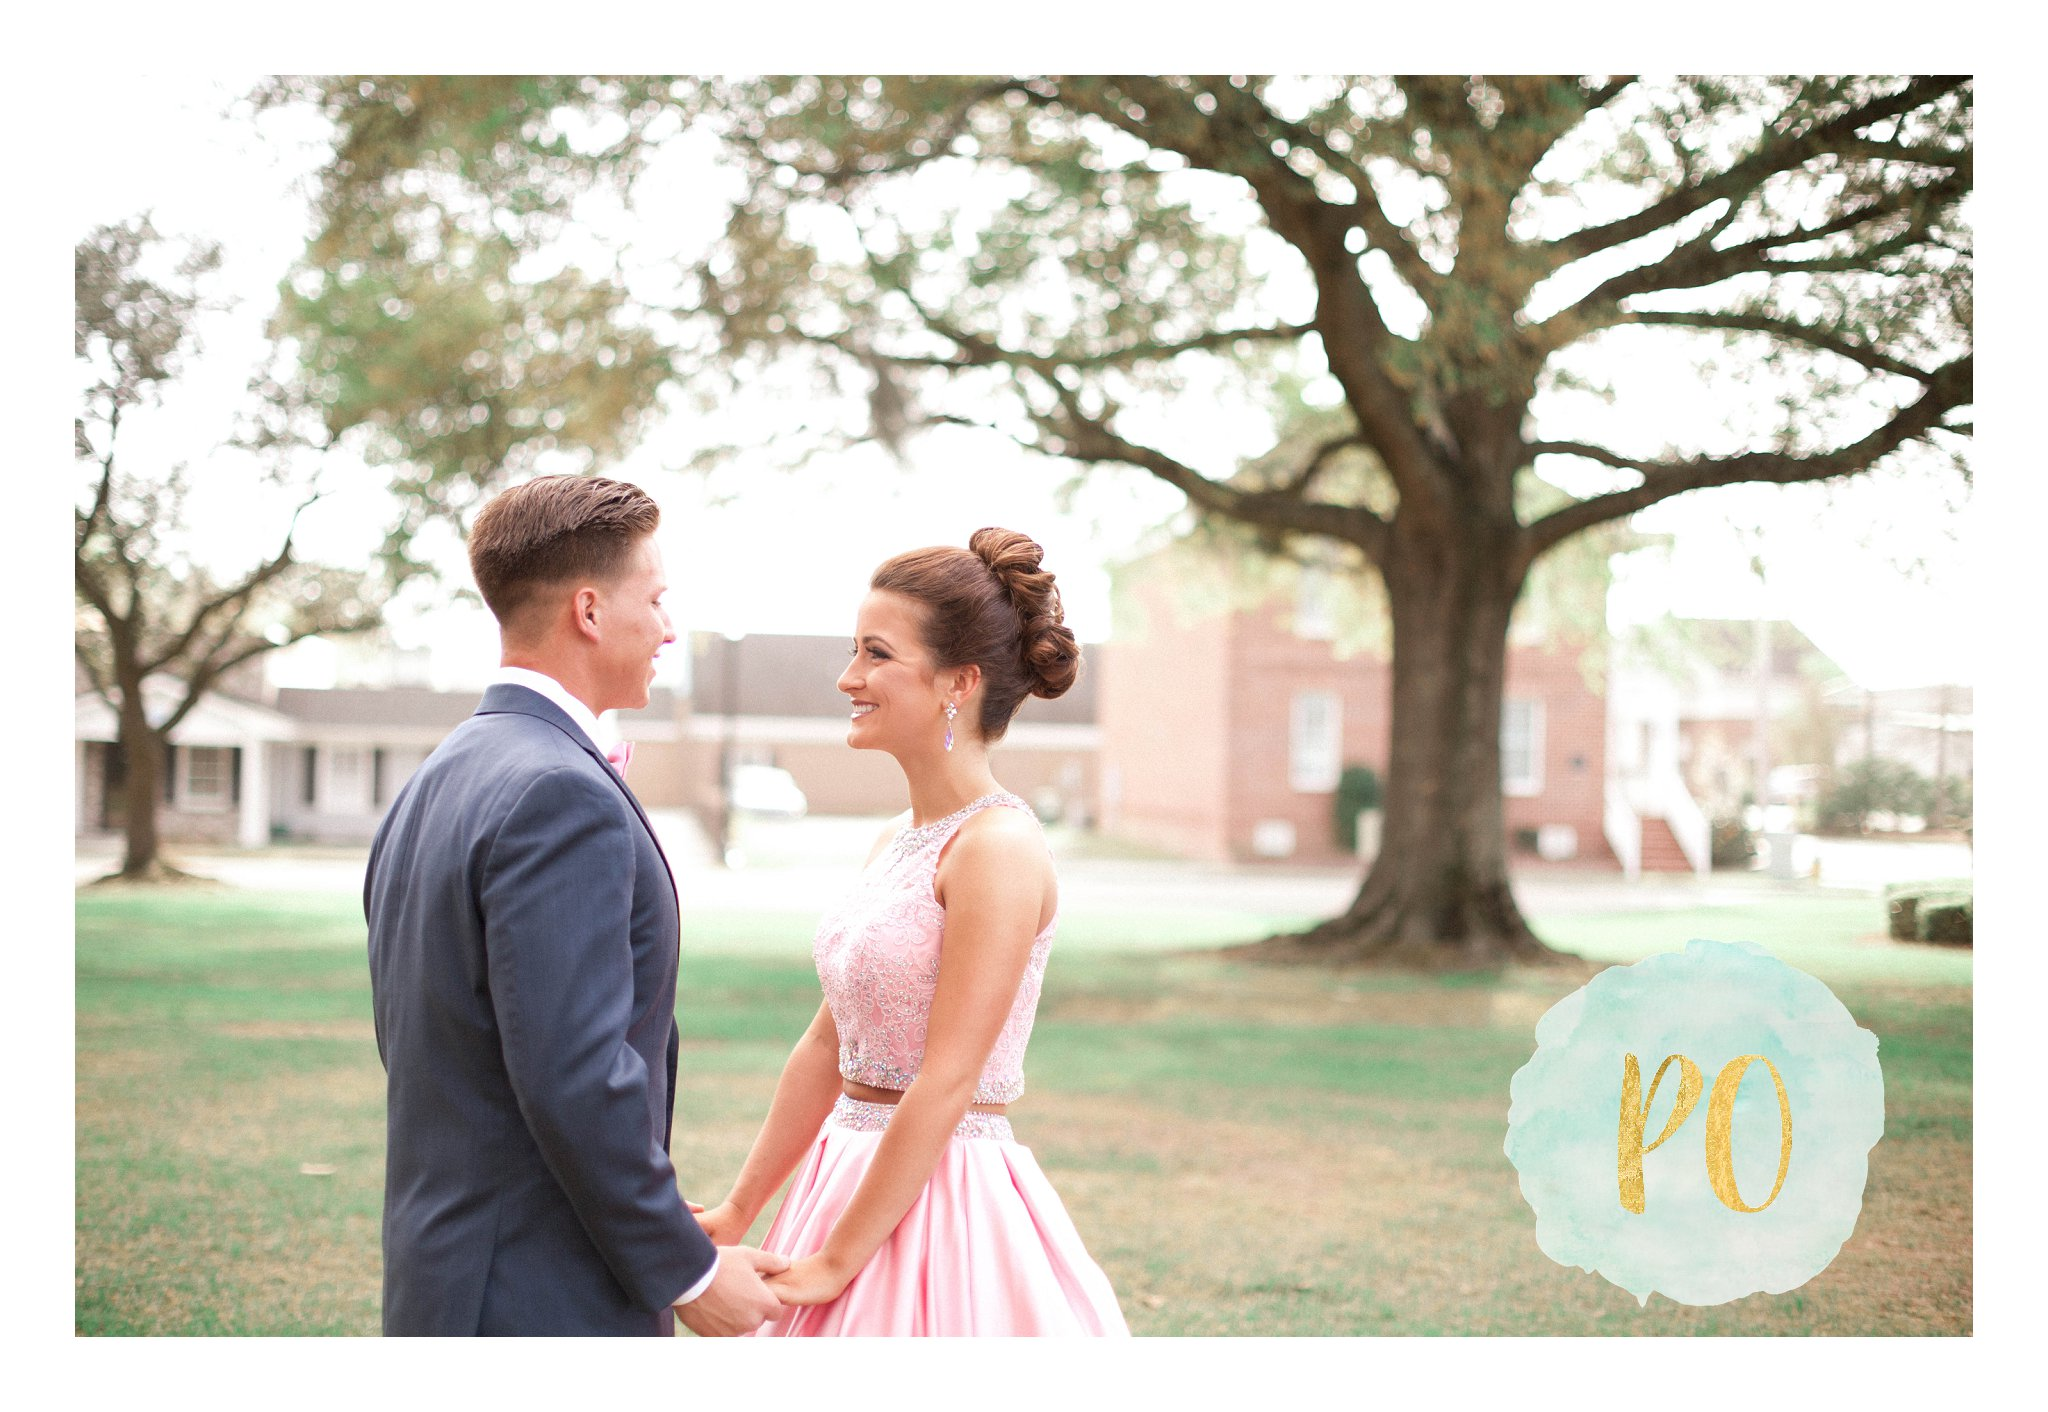 kylee_christian_prom_poured_out_photography-32_WEB.jpg